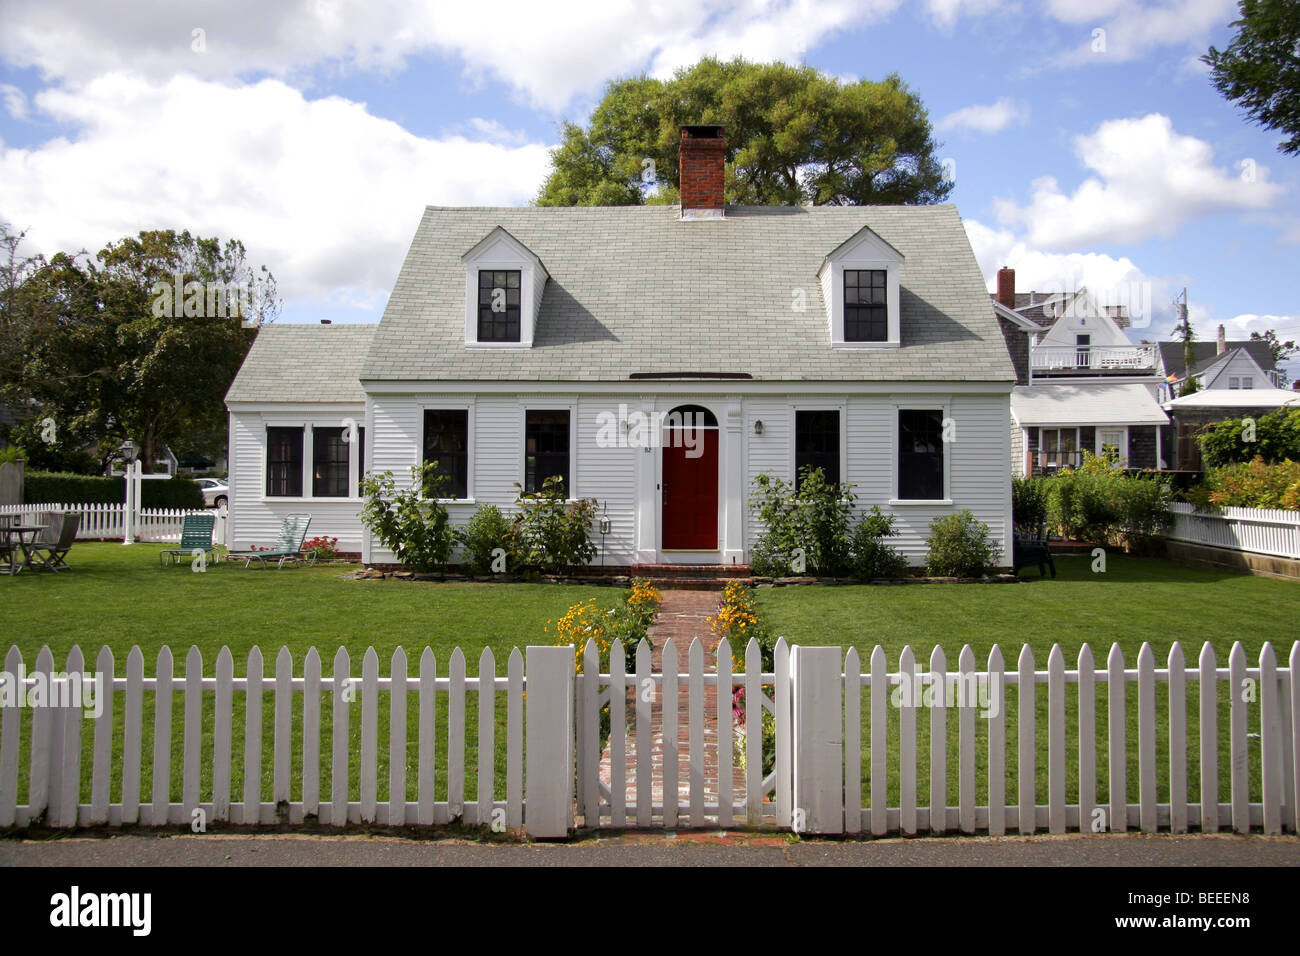 ma beachfront mast cape truro top resorts cottages house provincetown shore cod new resort img in